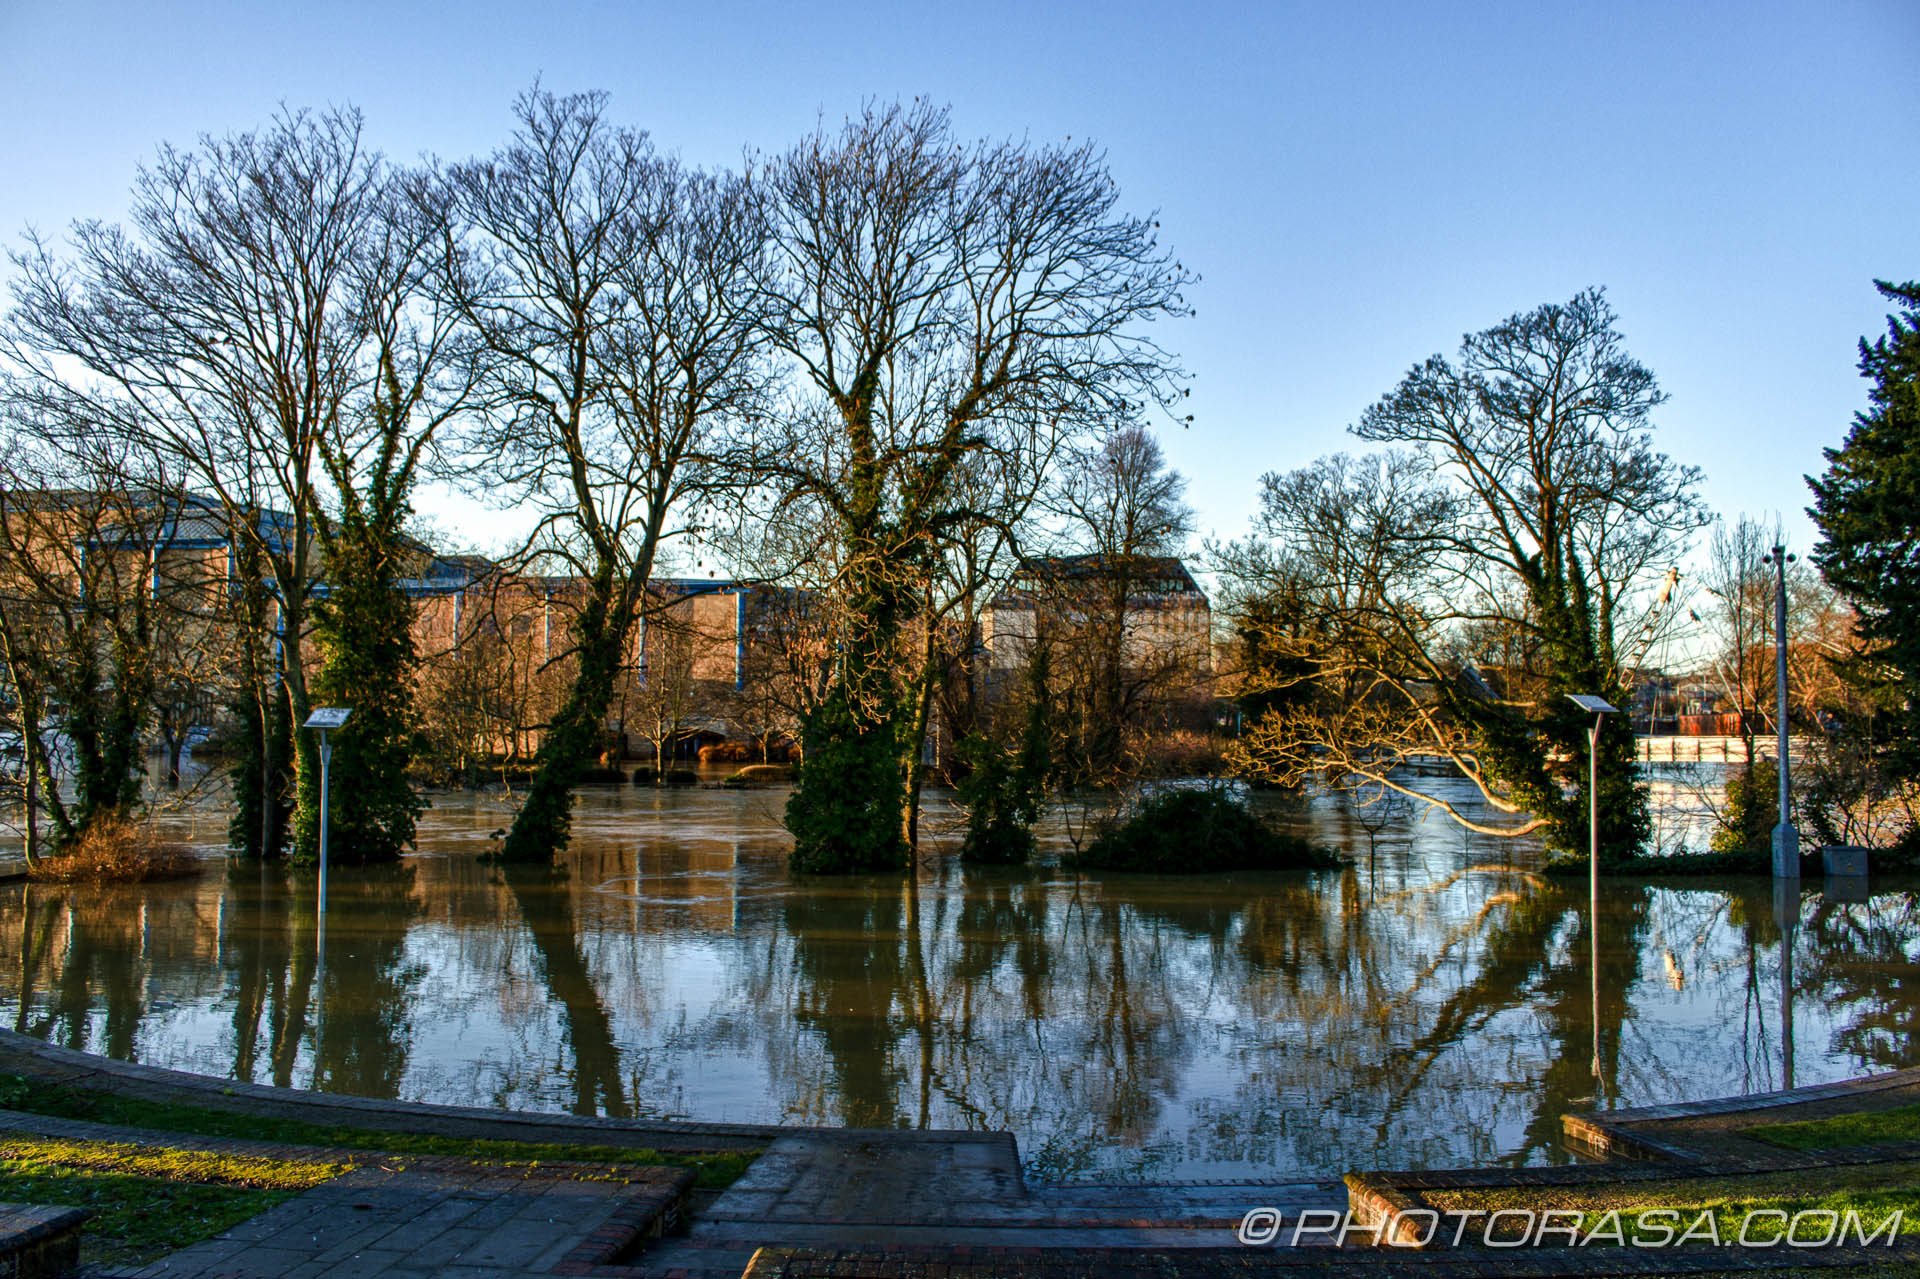 http://photorasa.com/wet-xmas-maidstone-river-medway-floods-town-centre/flooded-open-air-theatre-opposite-near-river/